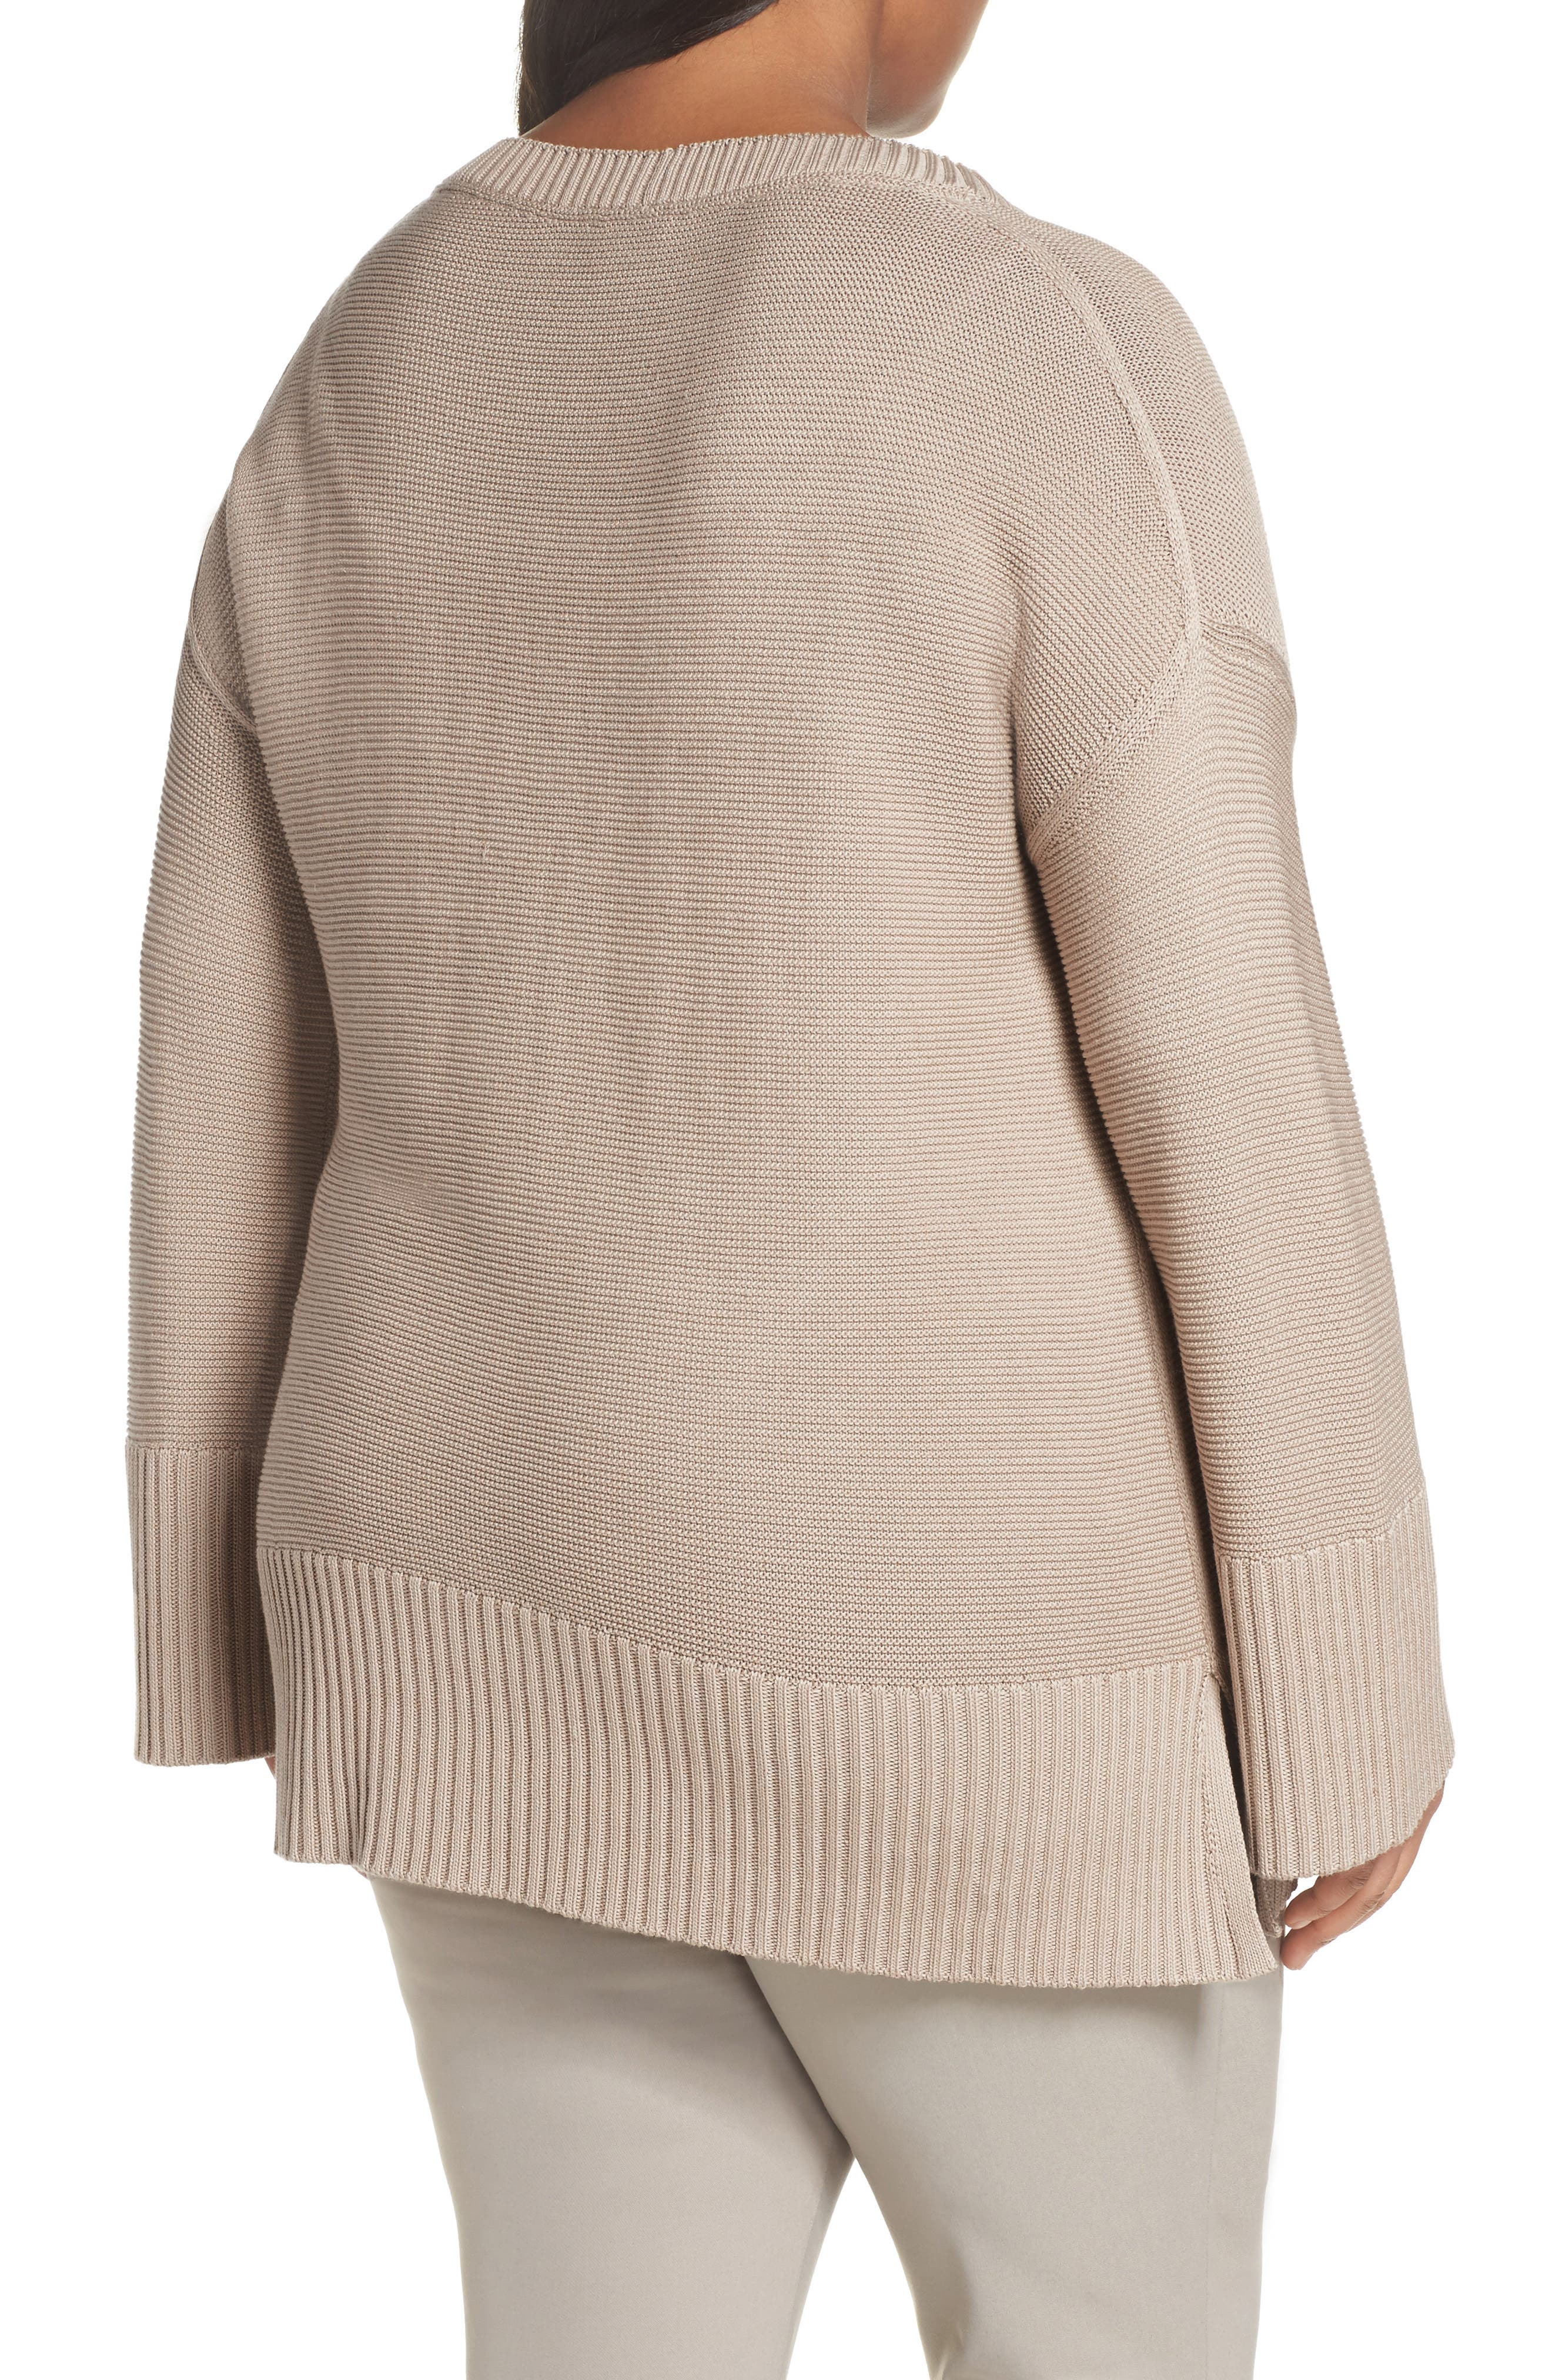 Lafayette 148 Silk and Cotton Sweater,                             Alternate thumbnail 2, color,                             Khaki